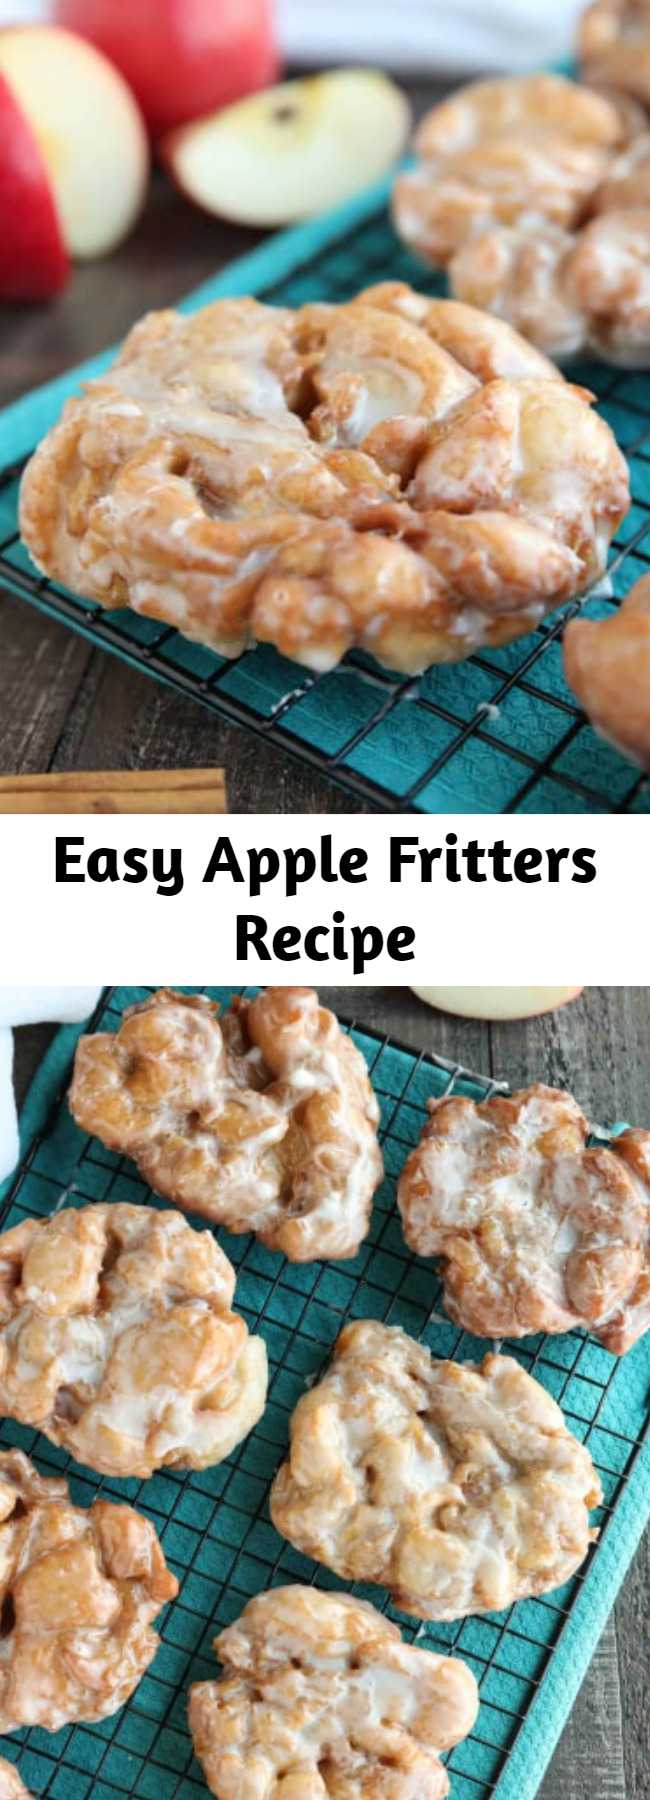 Easy Apple Fritters Recipe - An easy and delicious yeast doughnut with chunks of apples, ground cinnamon, and a sweet glaze.